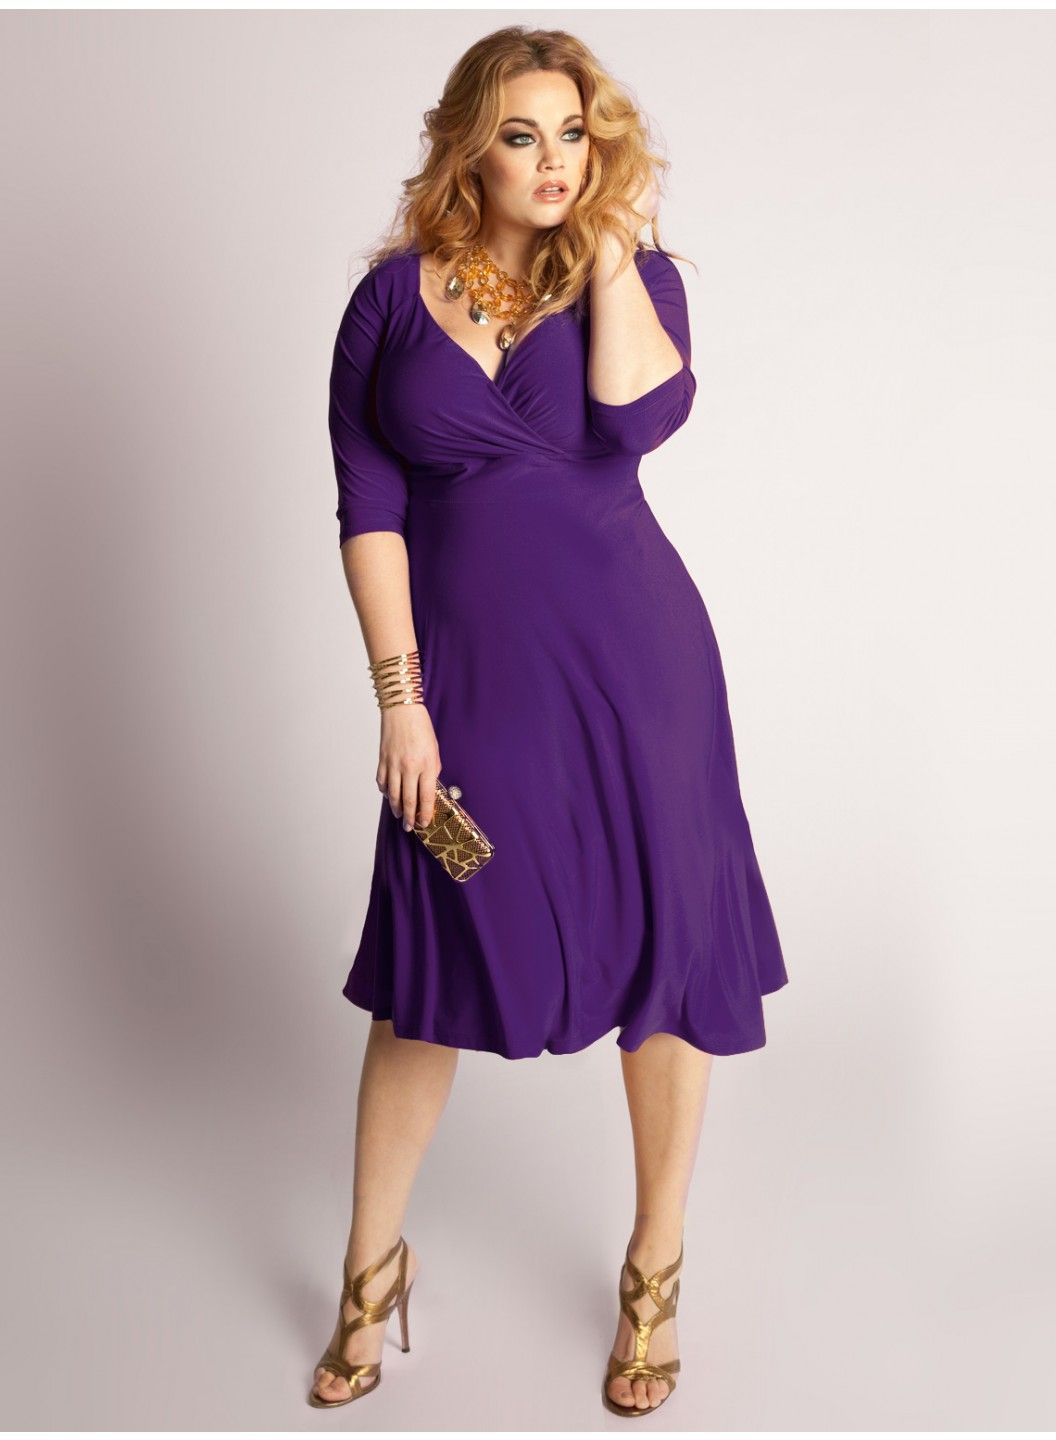 20 Plus Size Evening Dresses to Look Like Queen | Amethysts